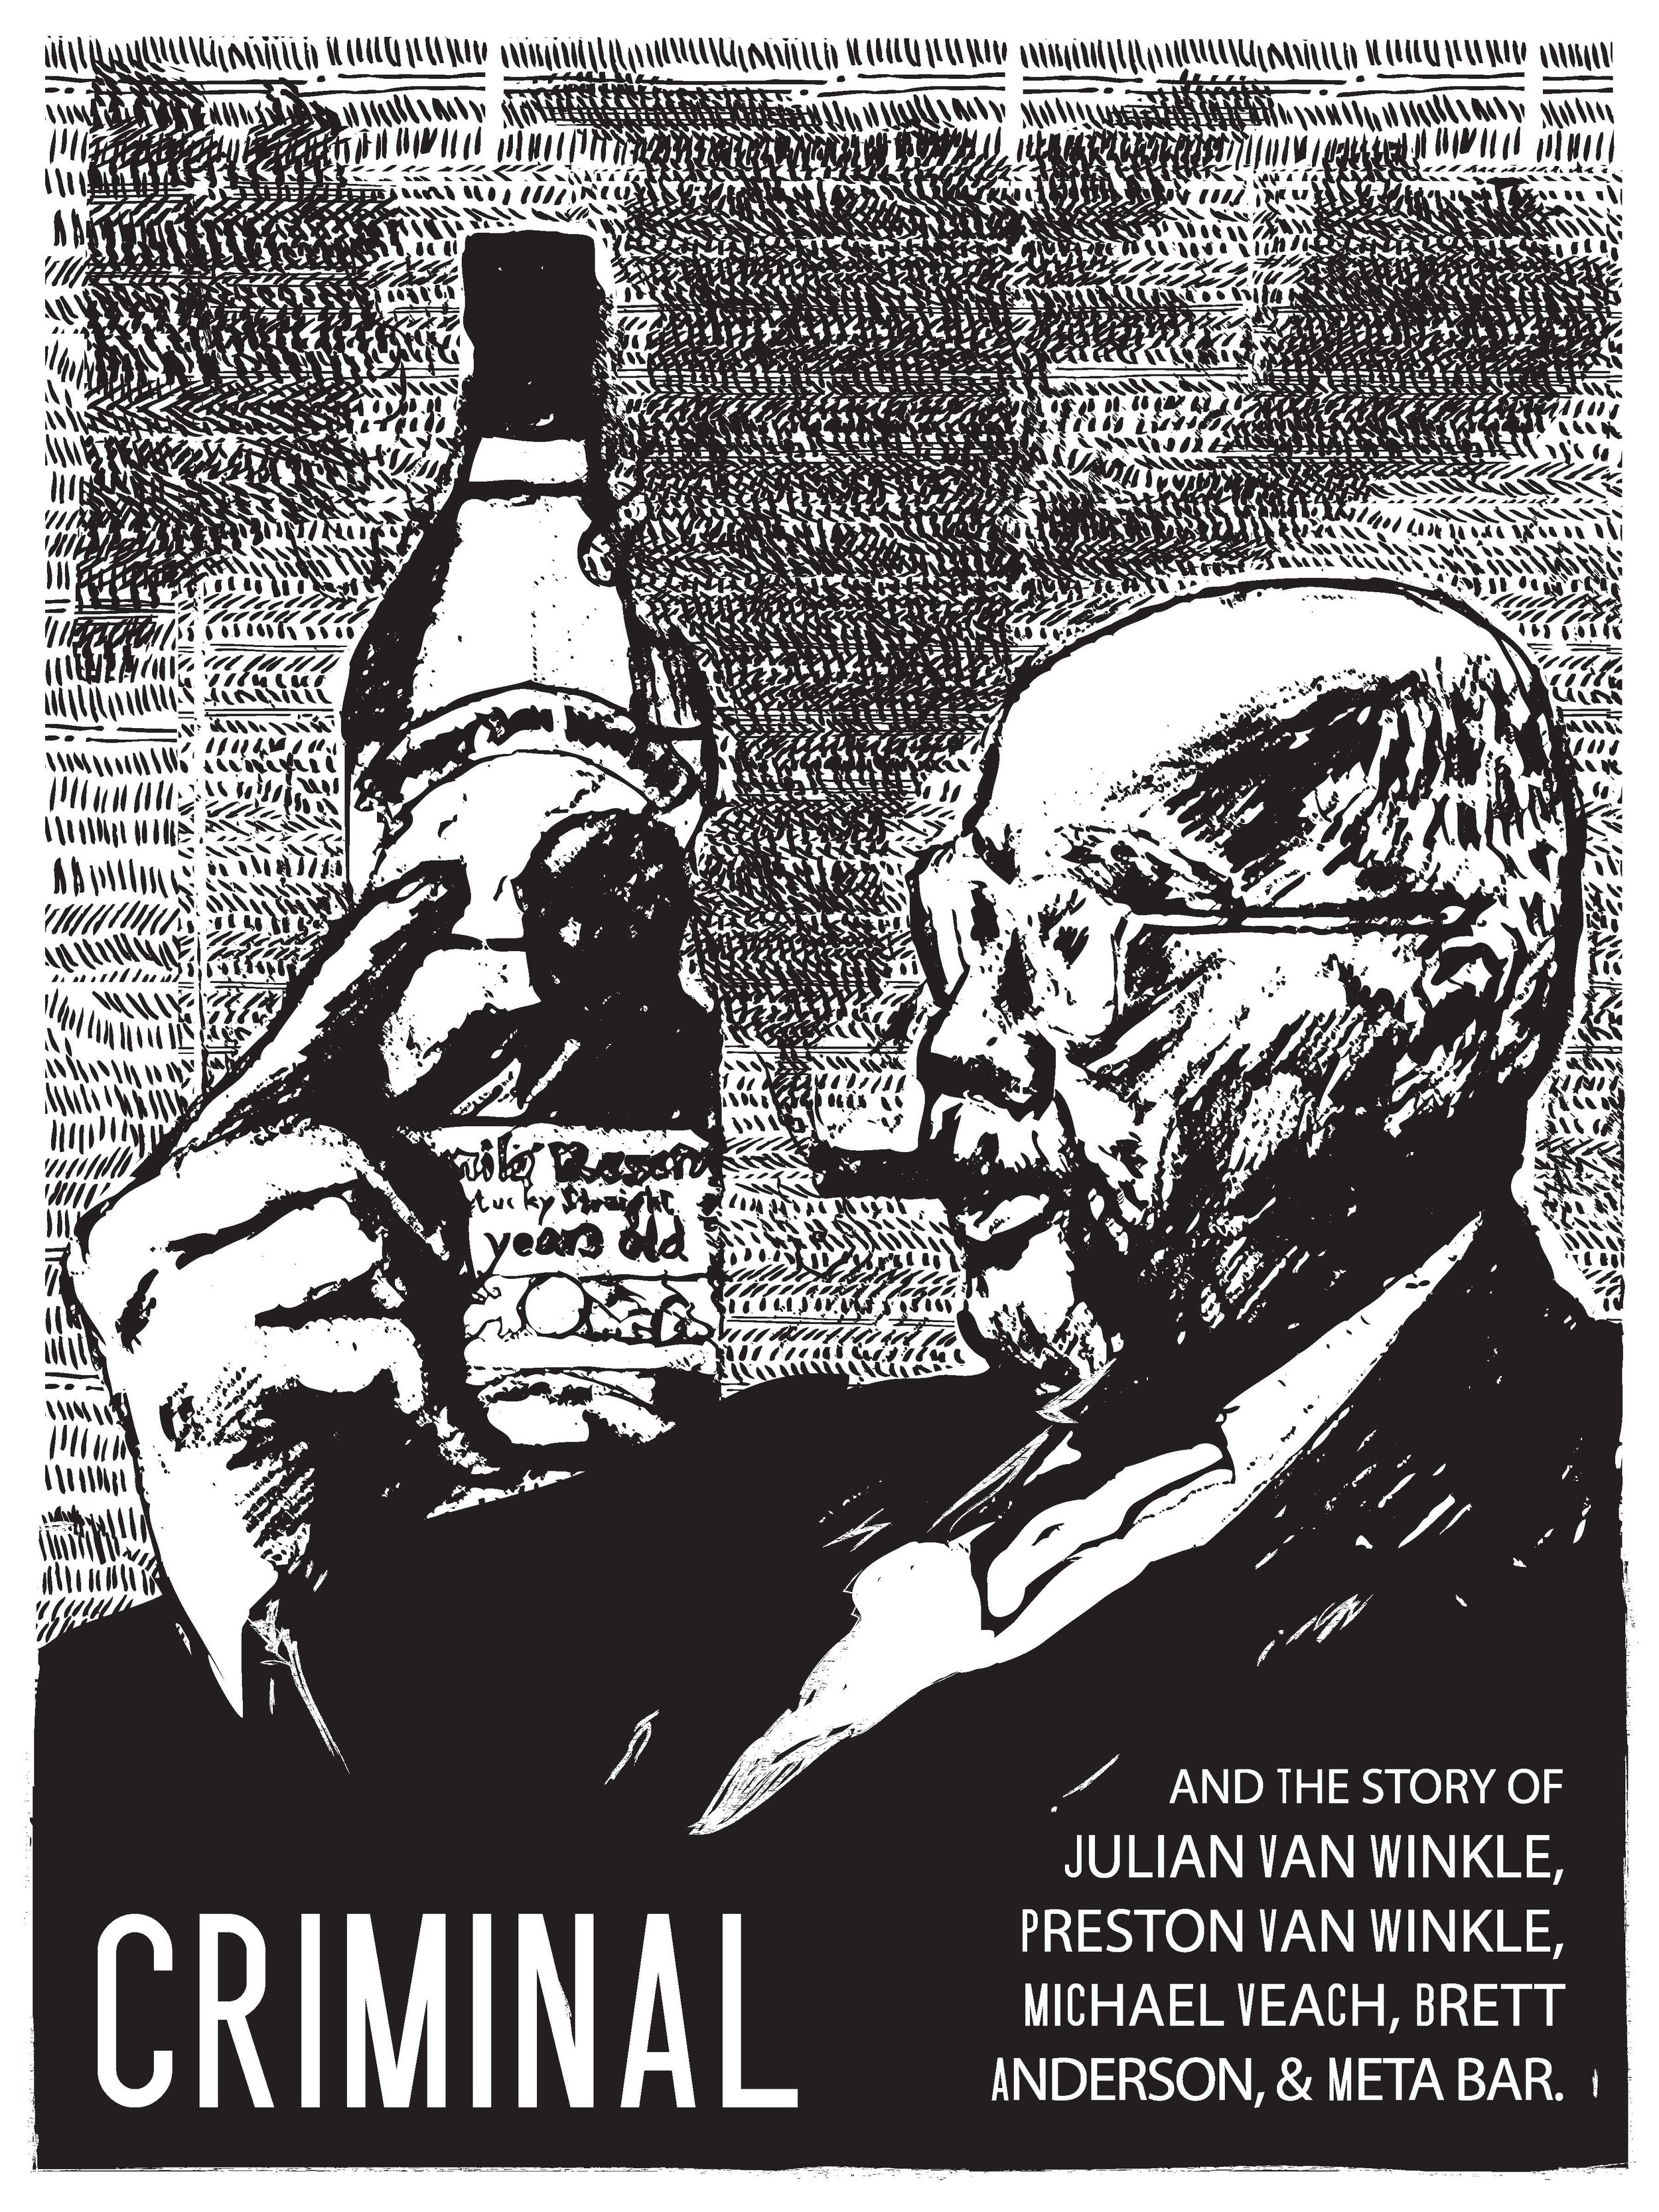 Limited Screen-printed Poster for CRIMINAL podcast